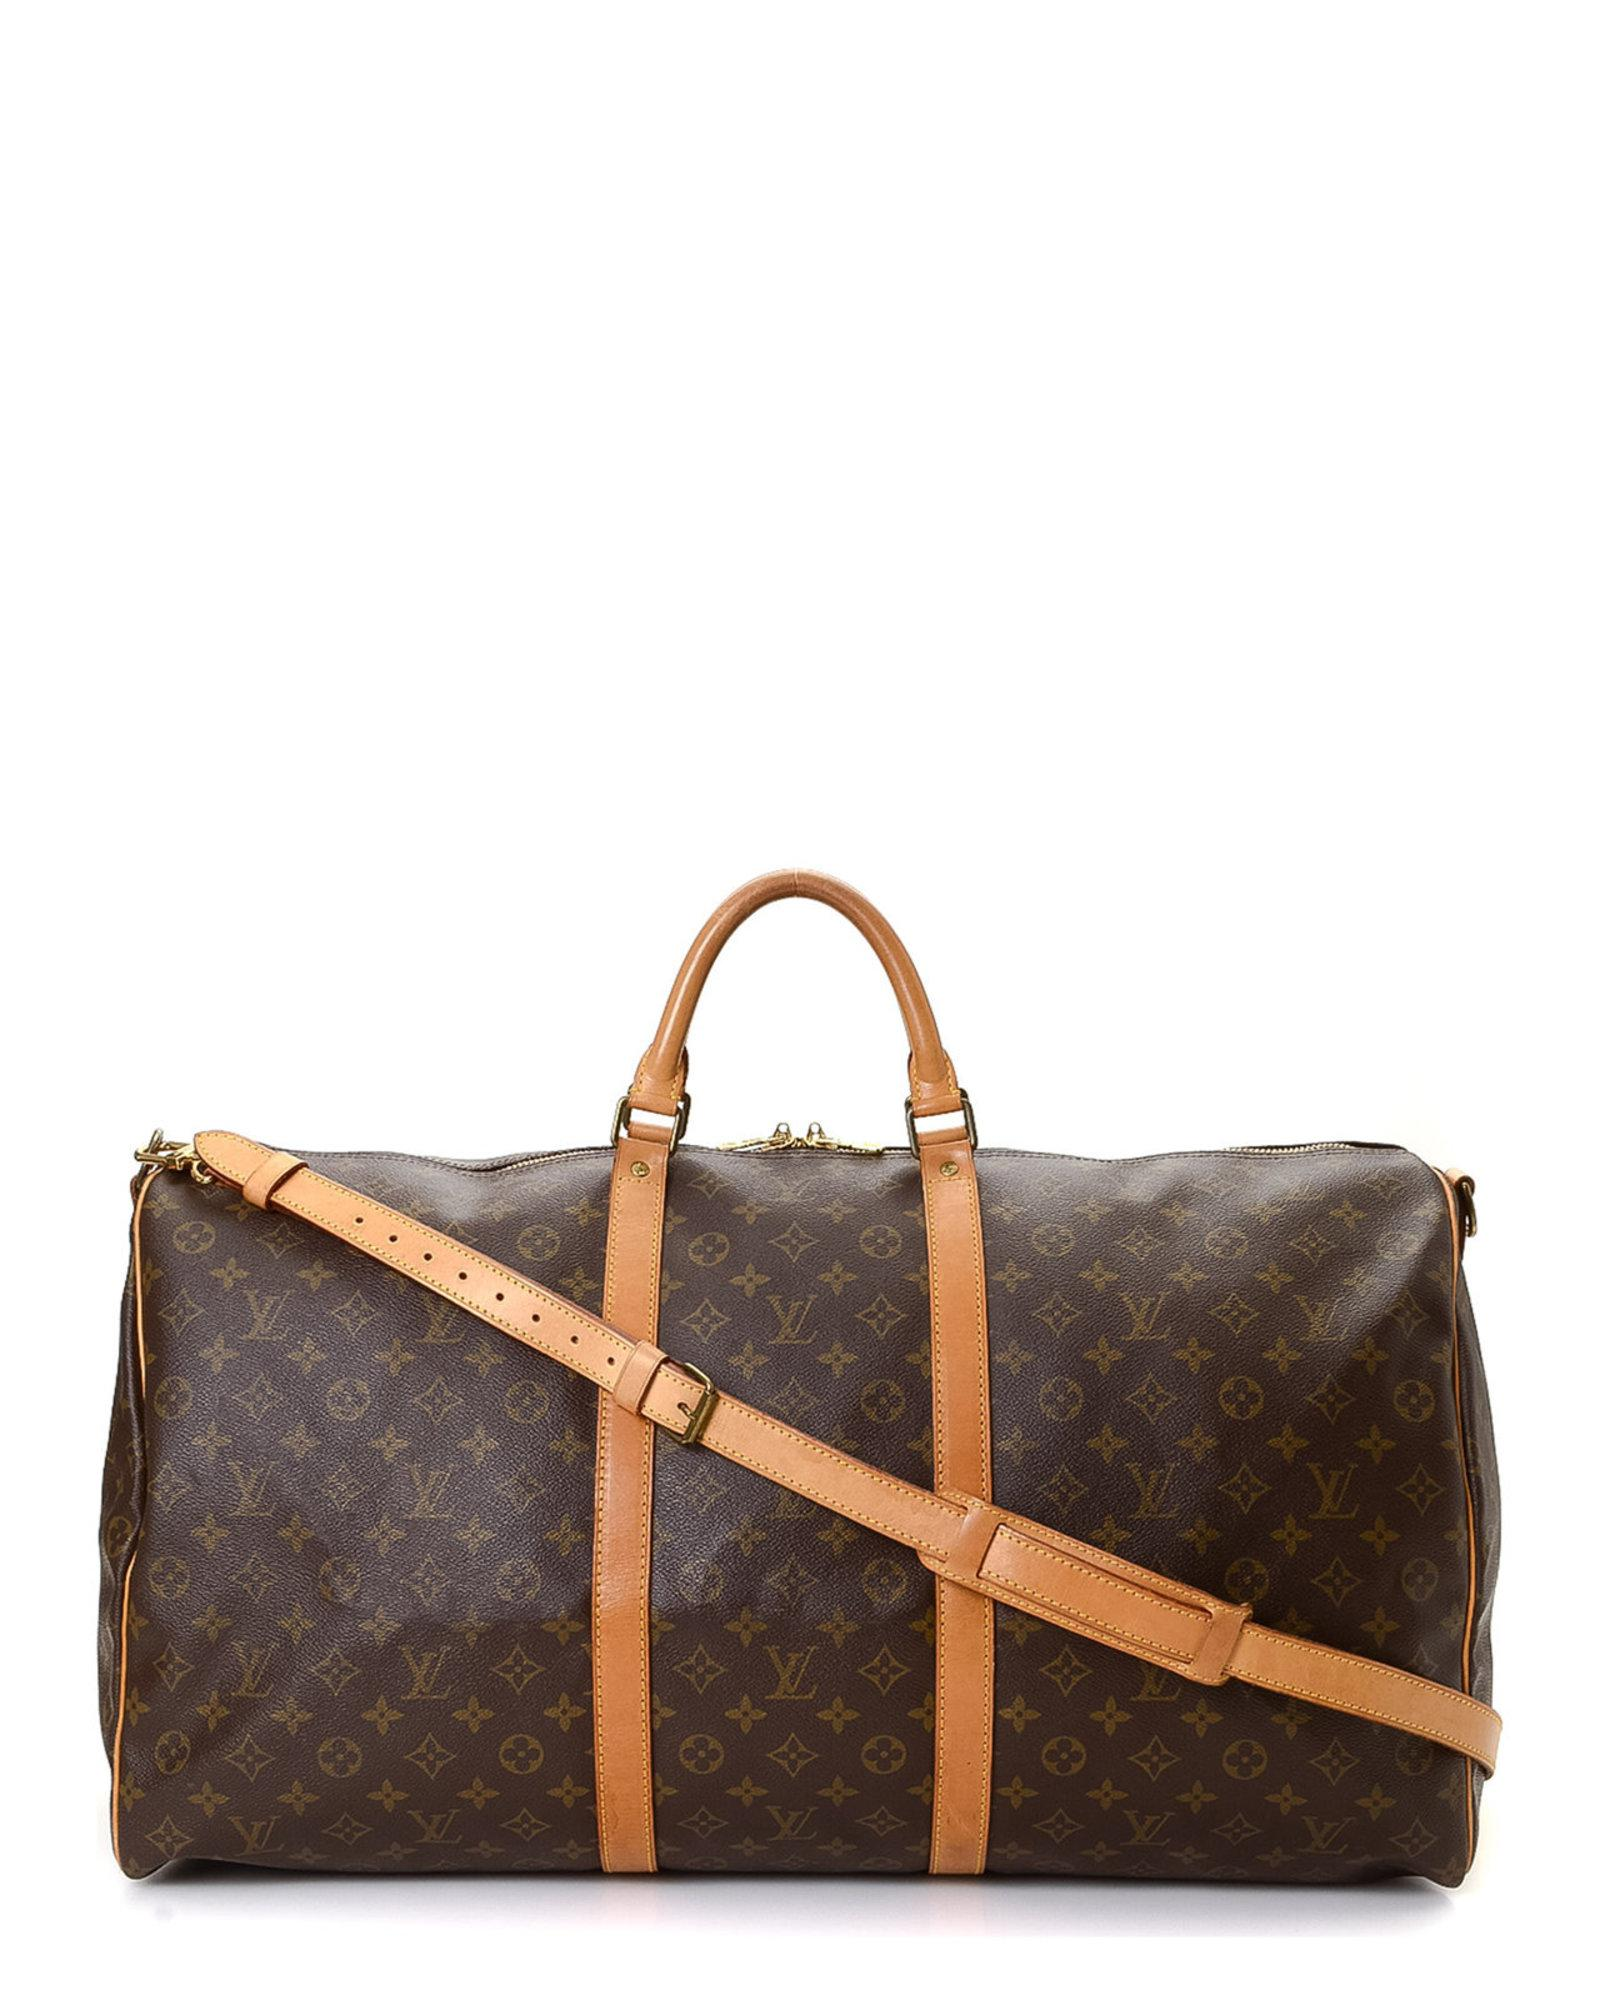 4a74cf2dcda1 Louis Vuitton Keepall 60 Bandouliere Travel Bag - Vintage in Brown ...